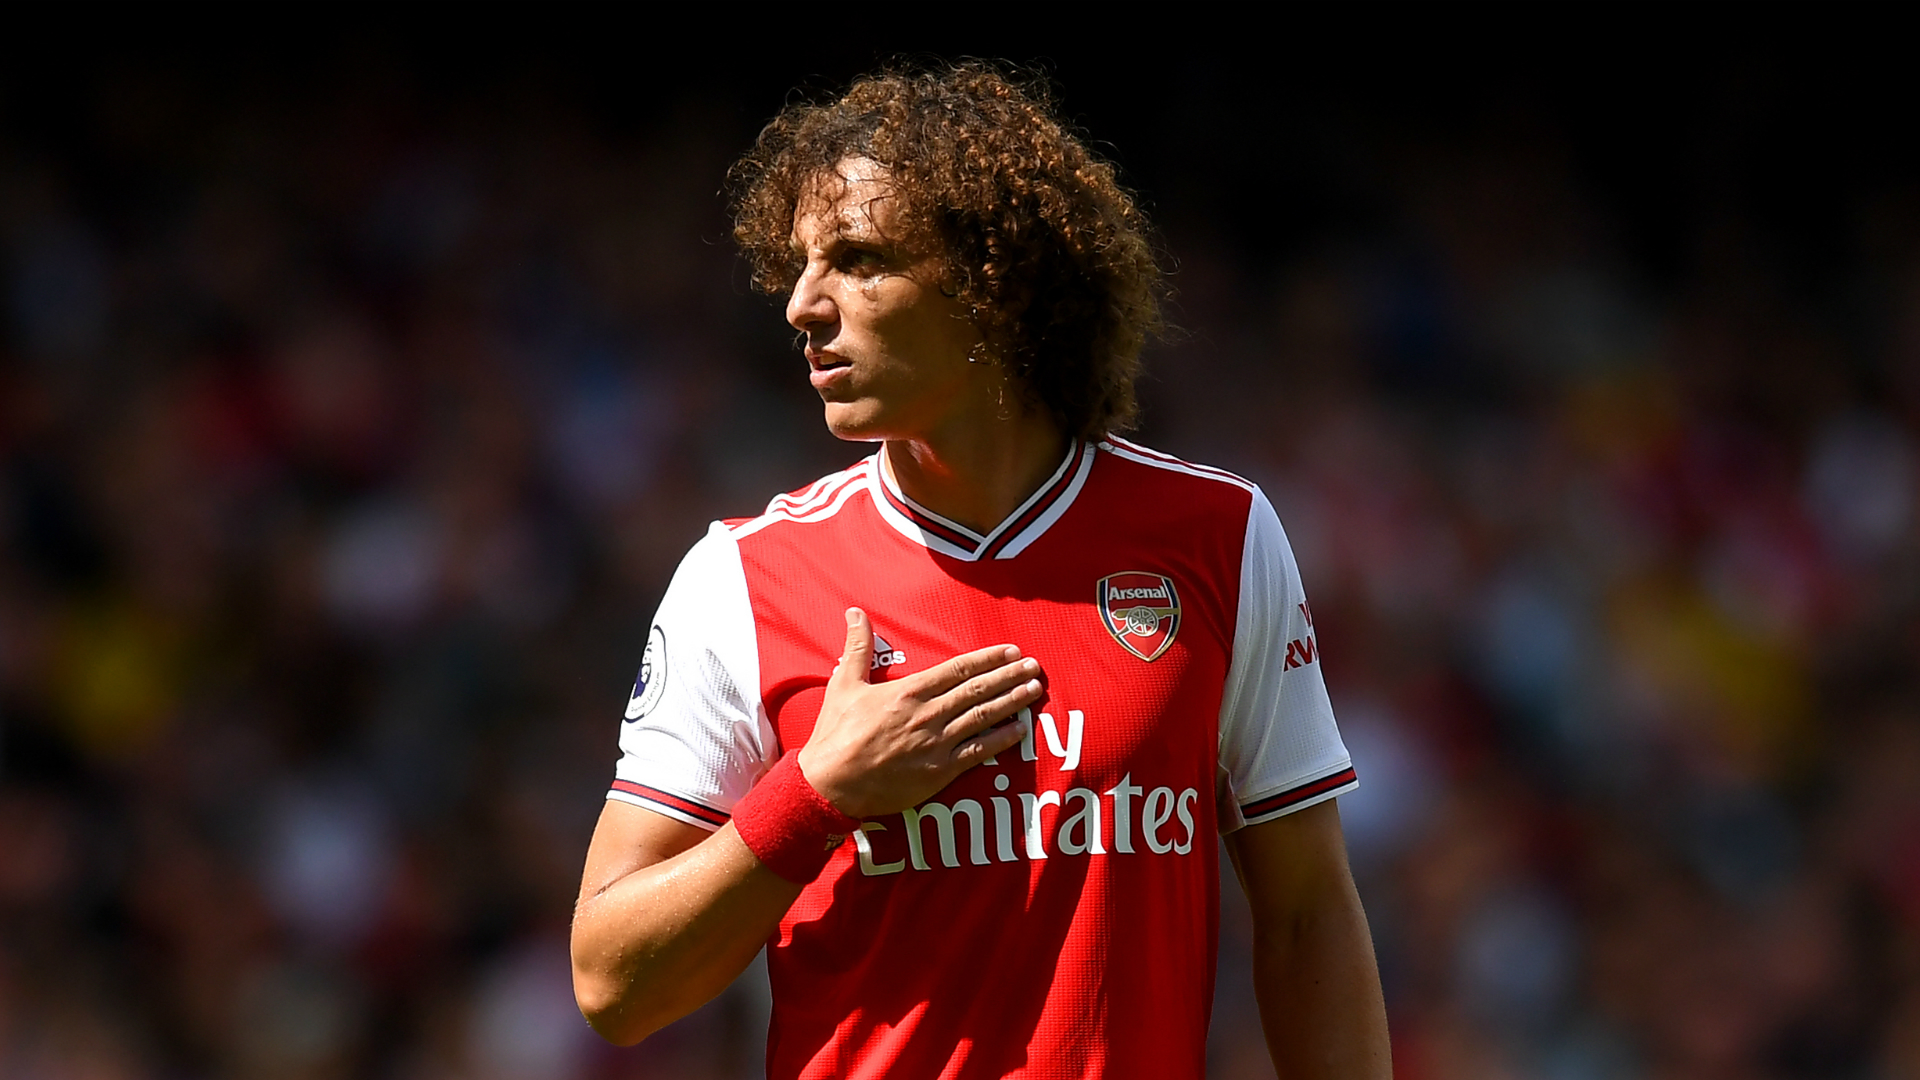 David Luiz: Ambition the reason for leaving Chelsea